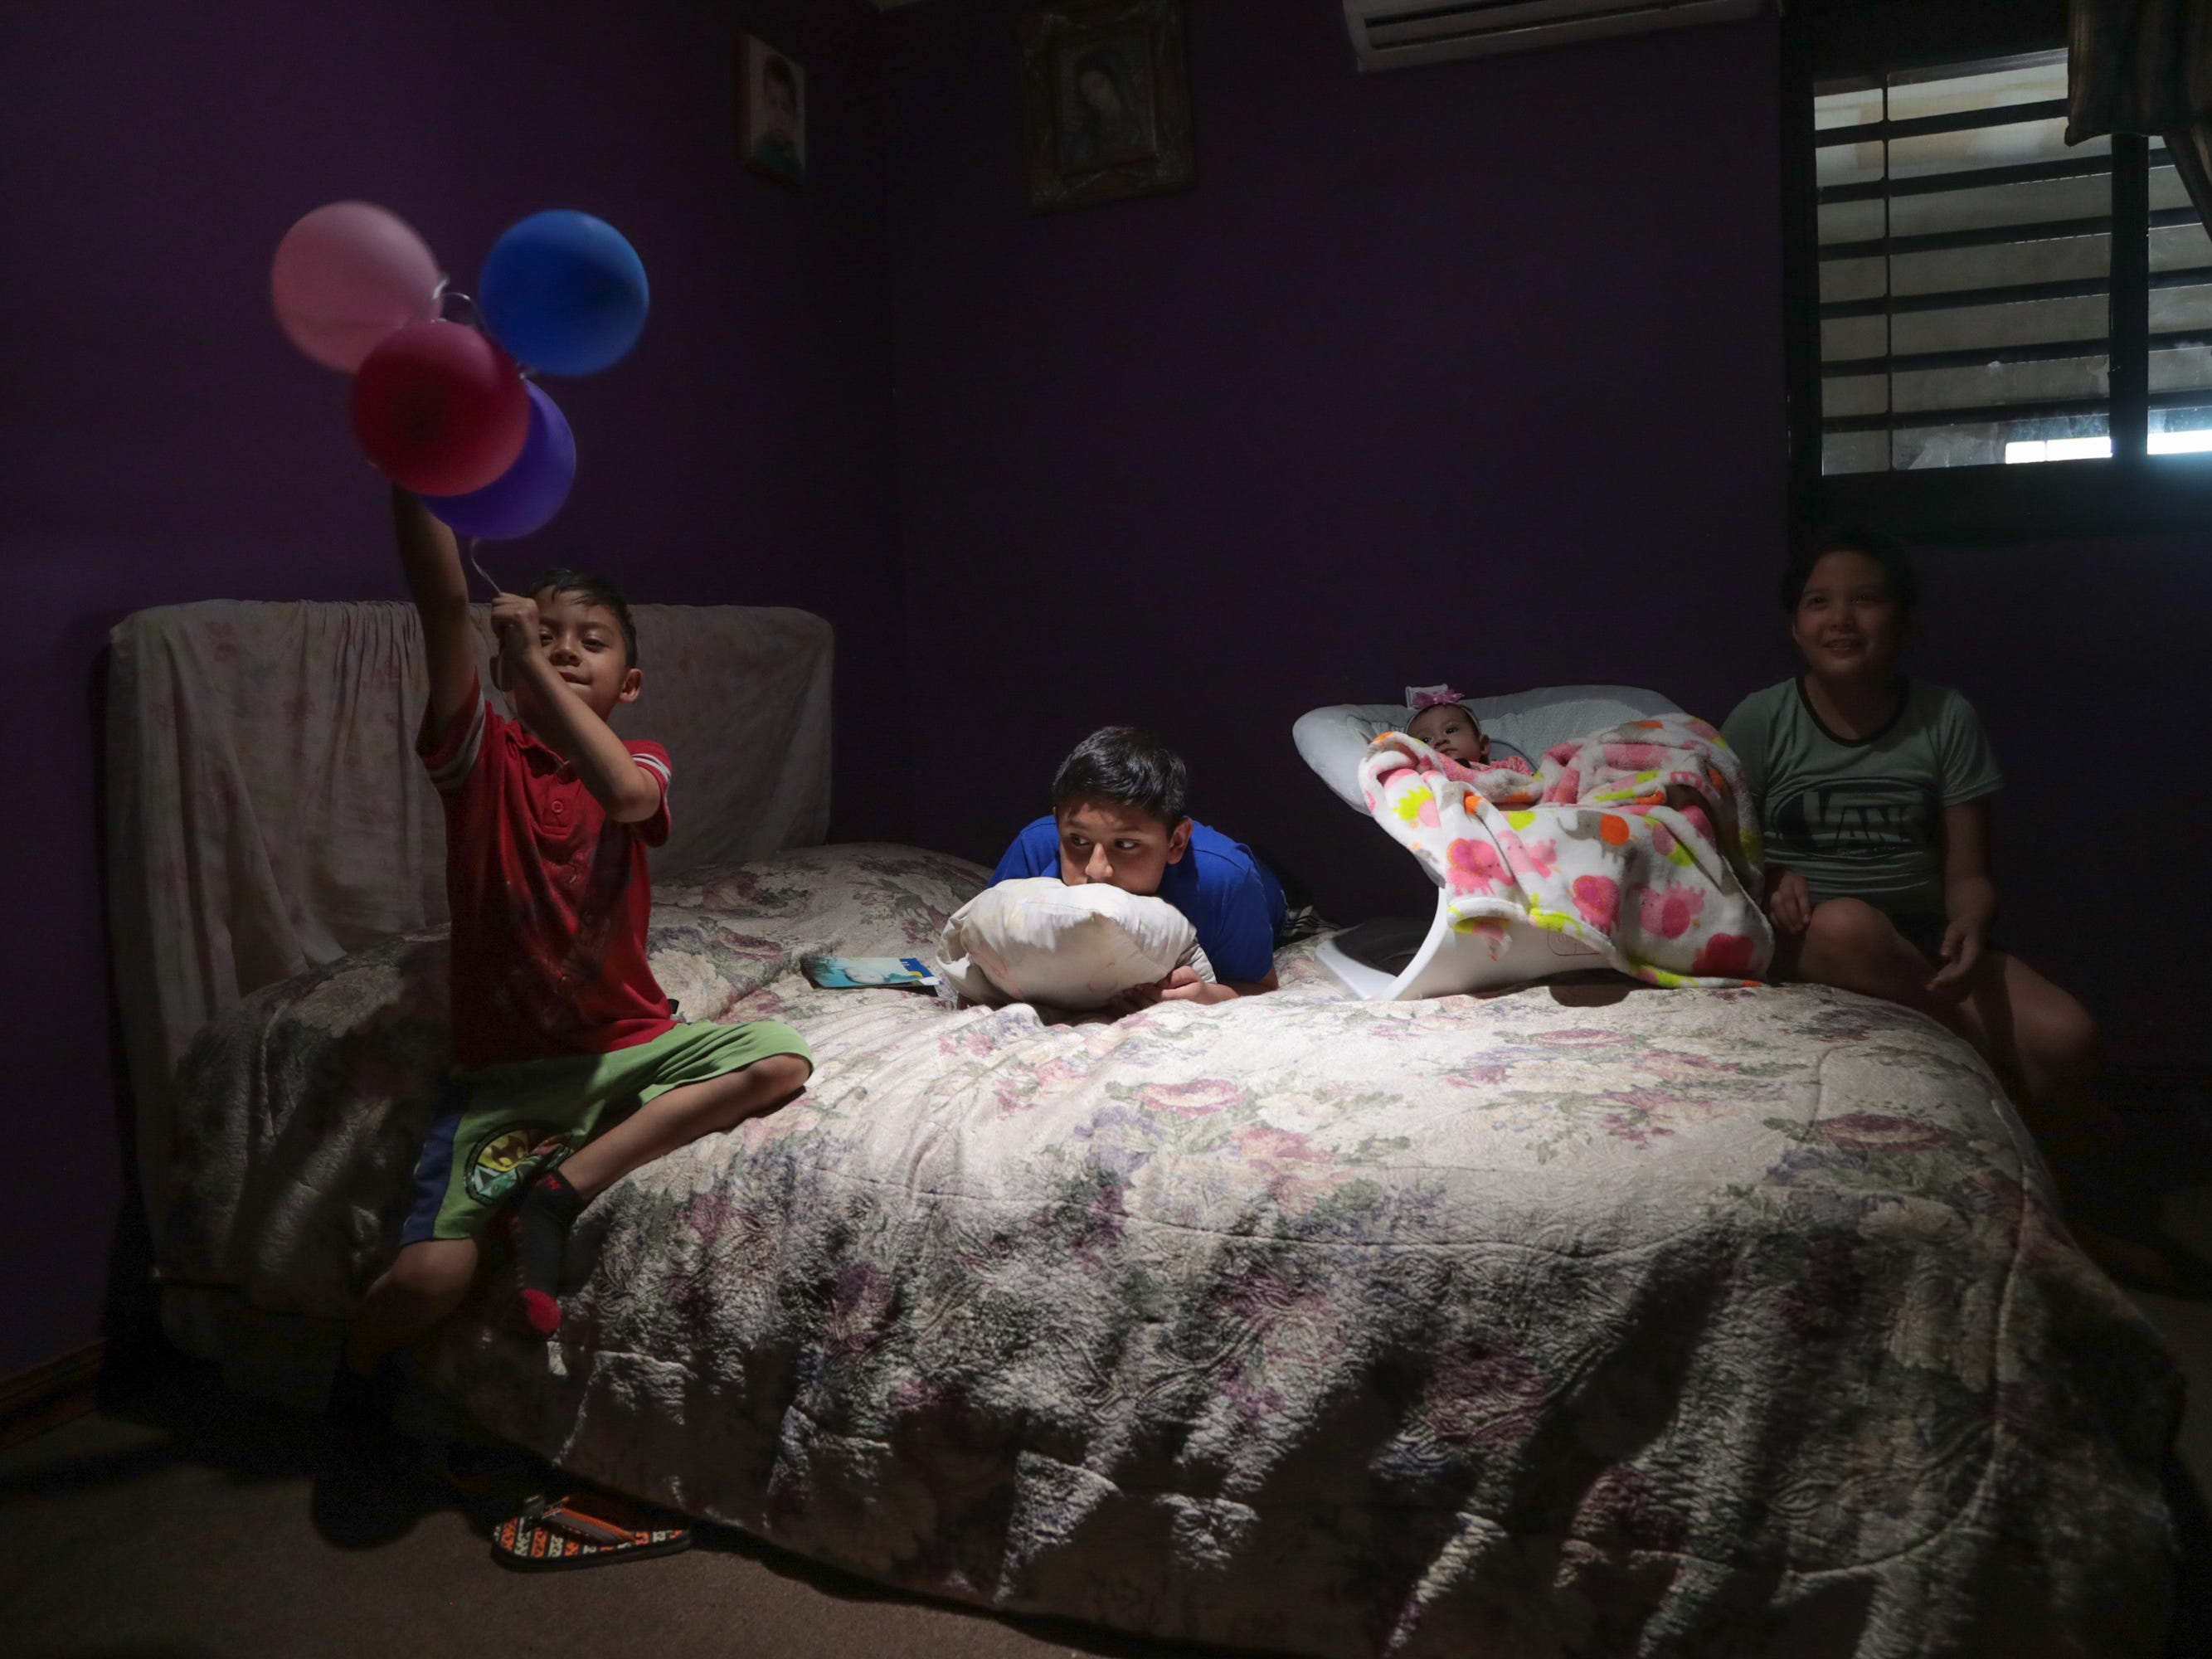 Luis Raudel Arámbula watches TV in his room with his cousins in Mexicali on May 8, 2018. He has asthma and often stays inside to avoid the bad air outside.